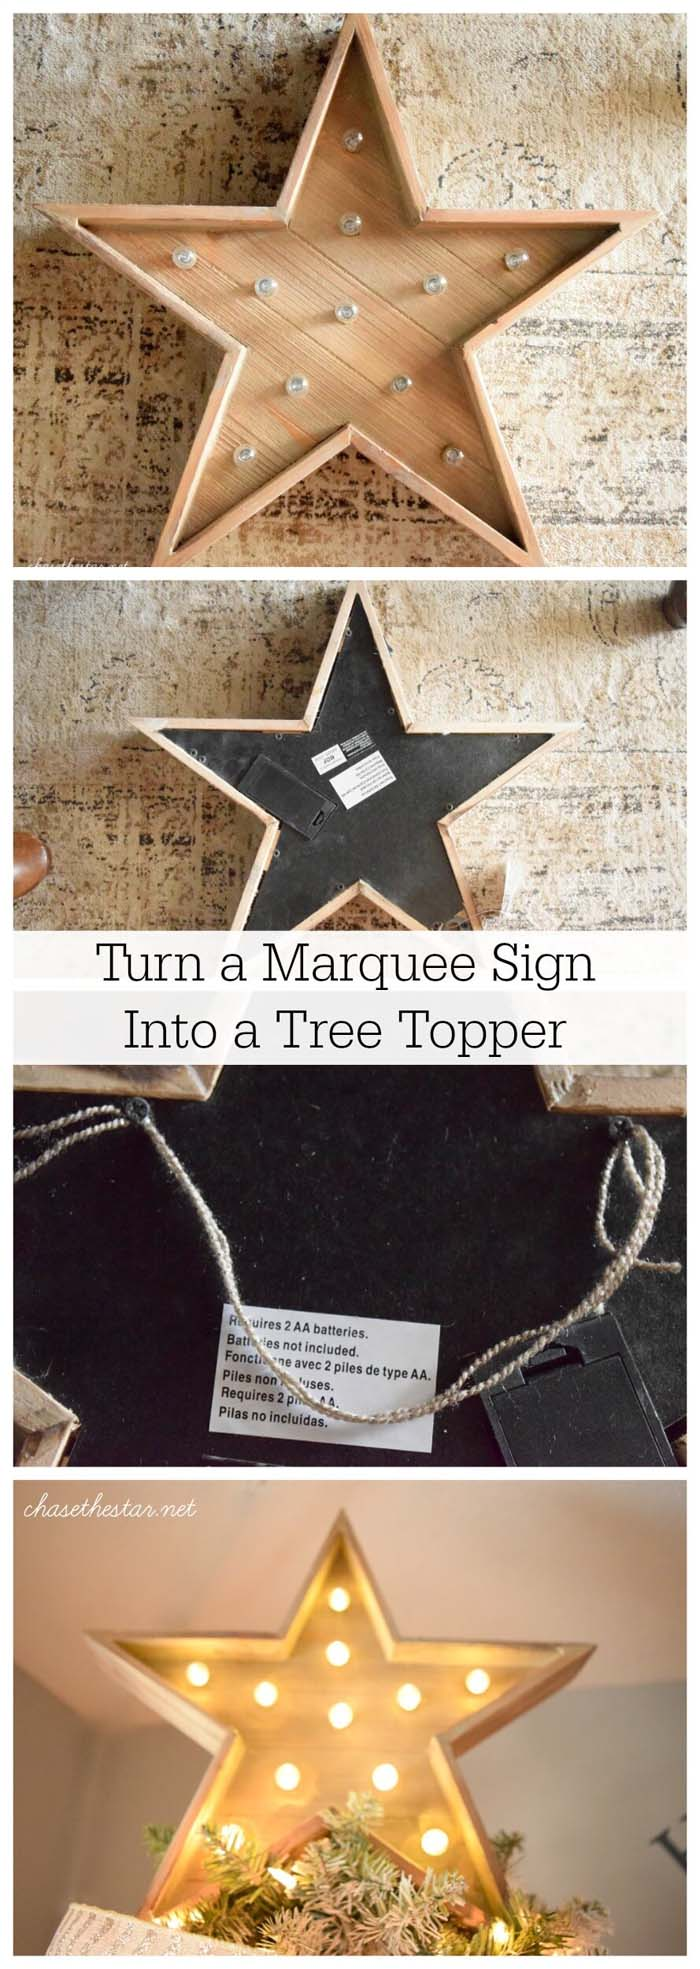 Turn a Star Marquee into a Tree-Topper #Christmas #crafts #decorations #decorhomeideas